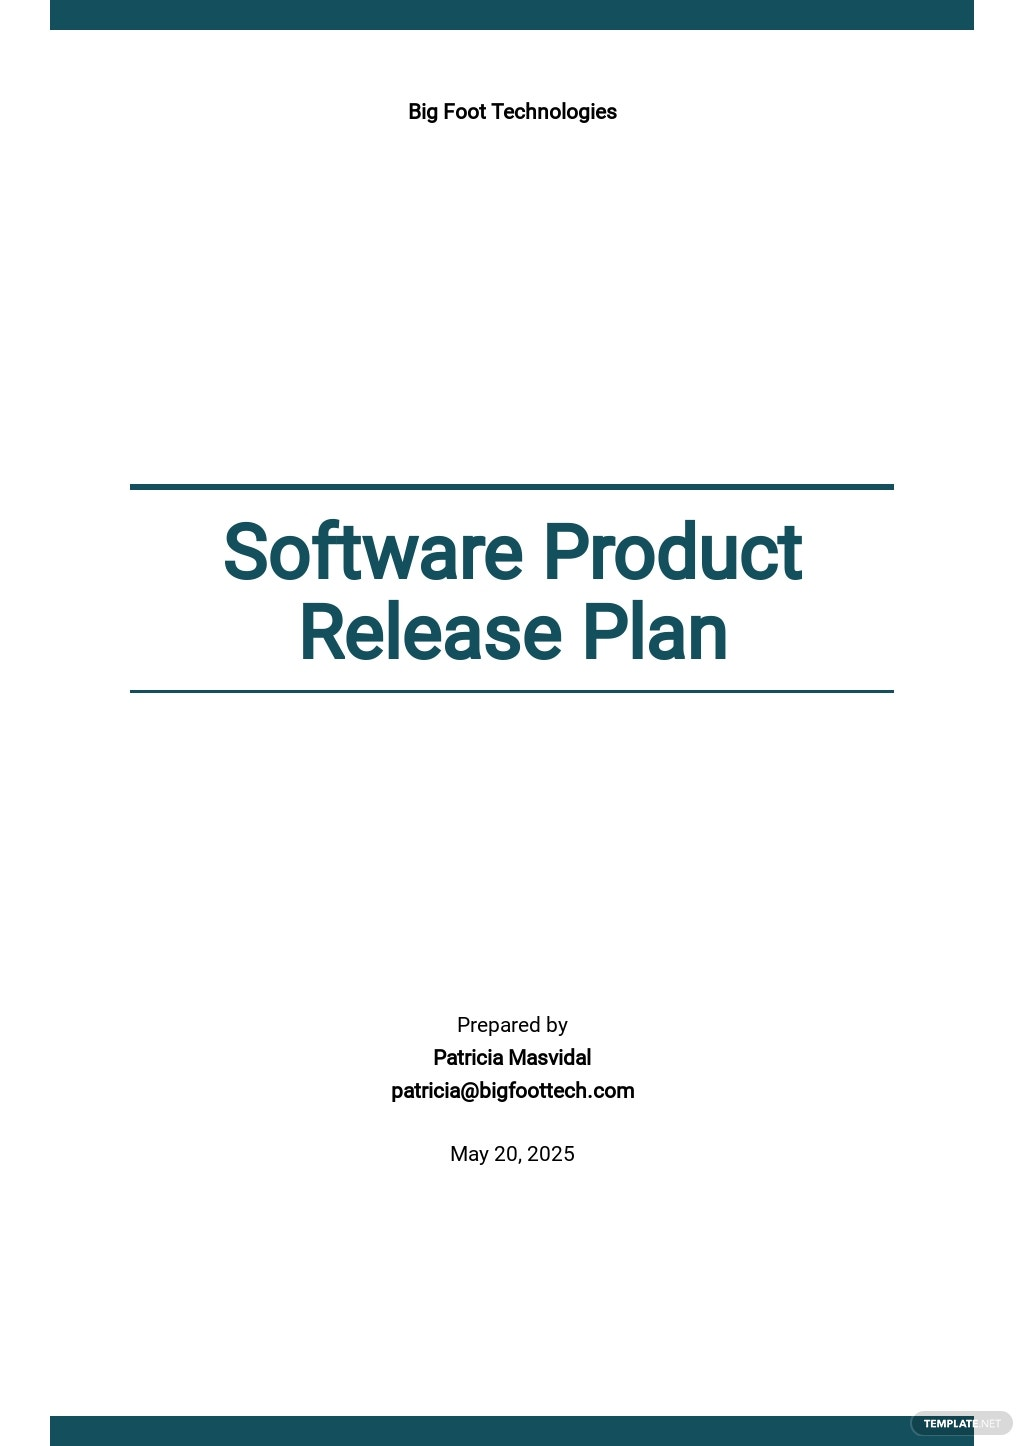 Product Release Plan Template.jpe